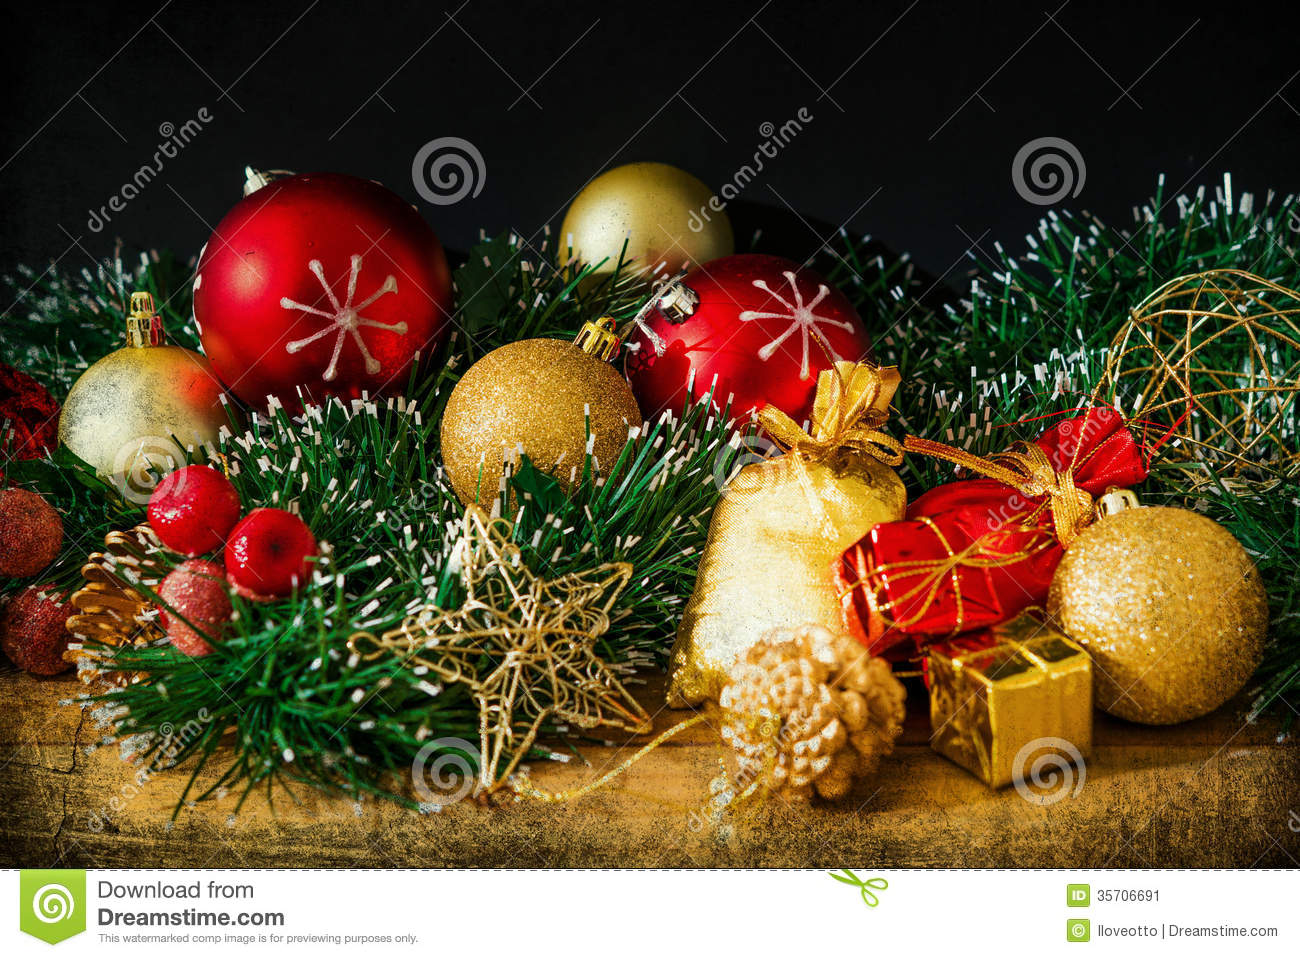 Old Fashioned Christmas Decoration Stock Image - Image of light ...